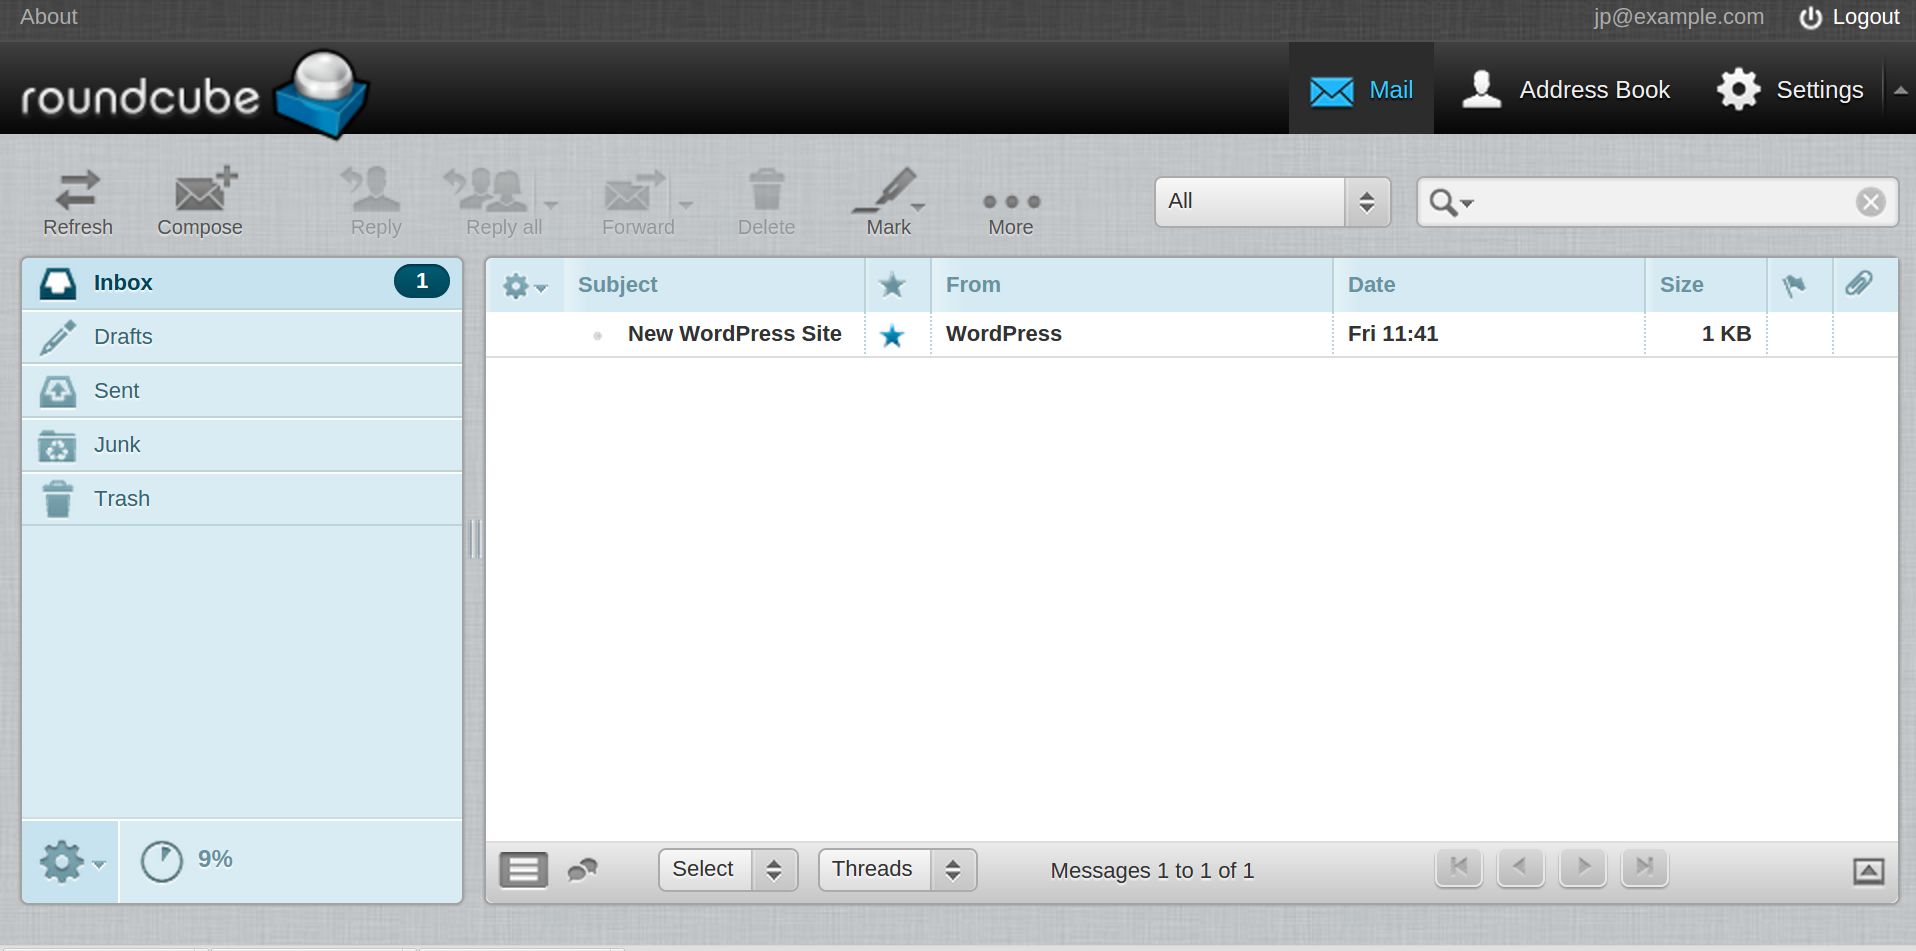 Example of Roundcube webmail